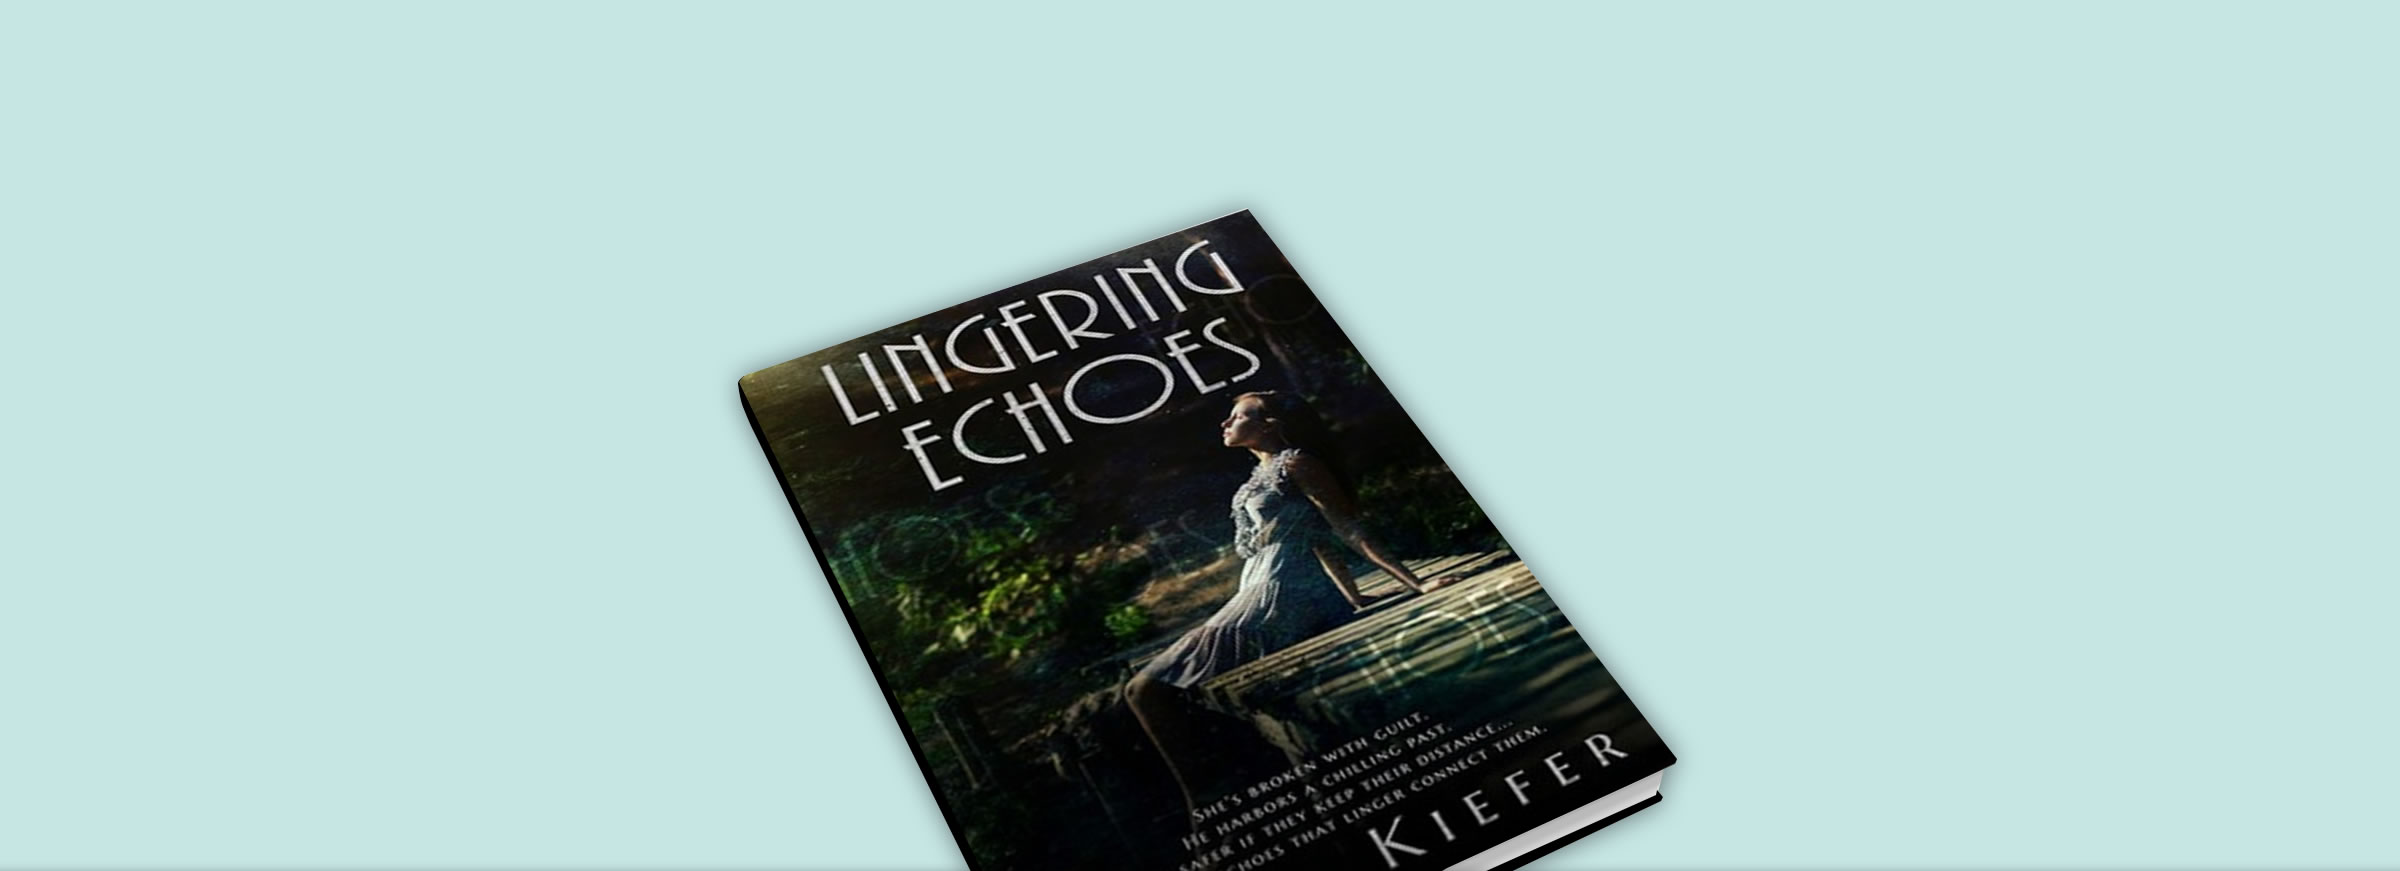 Check Out Lingering Echoes